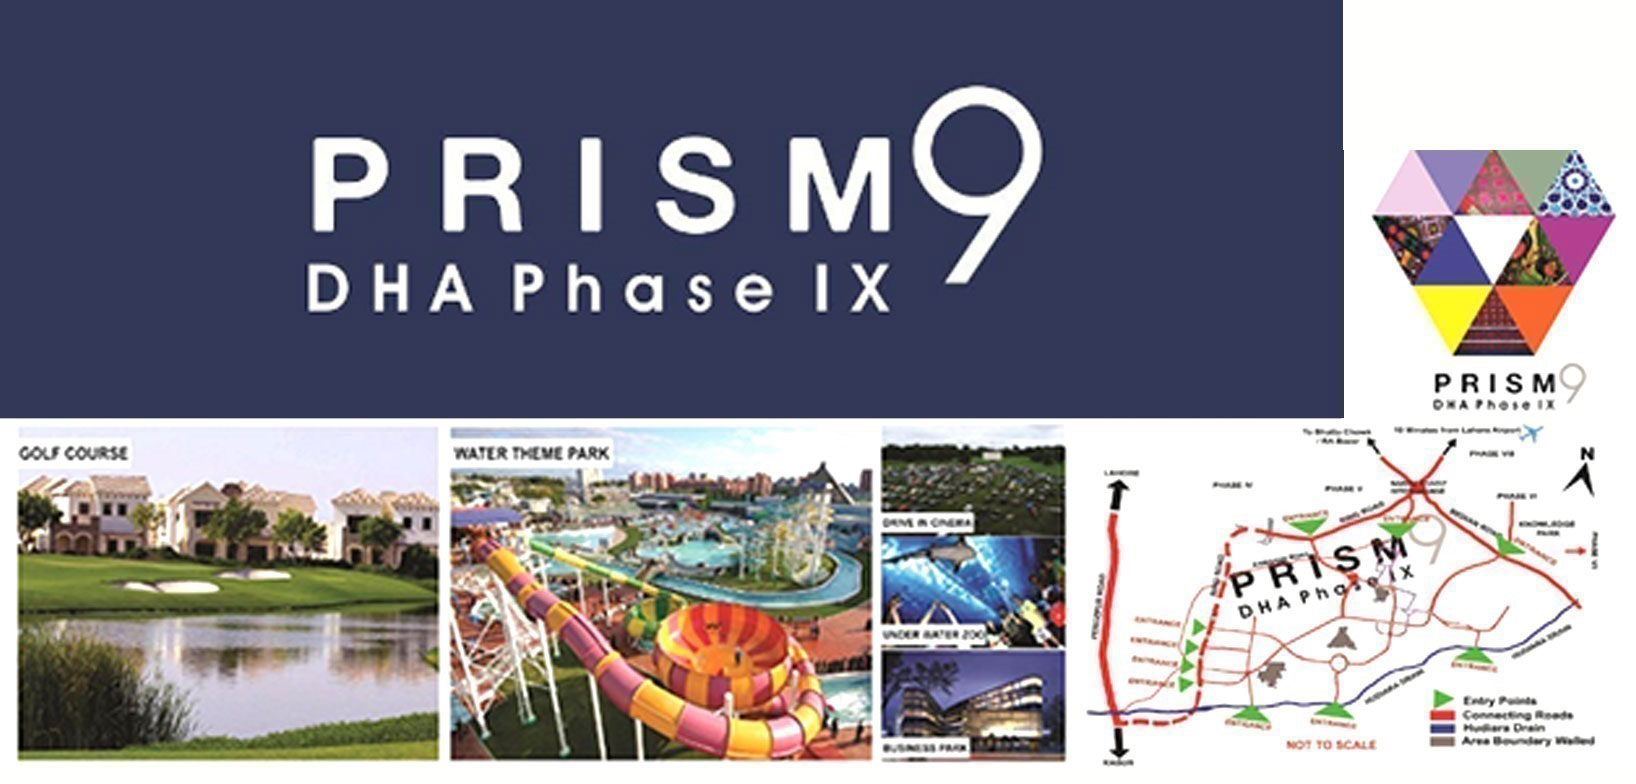 Available Plot No 1019 For Sale In Dha Phase 9 Prism Very Good Location Very Lo Price